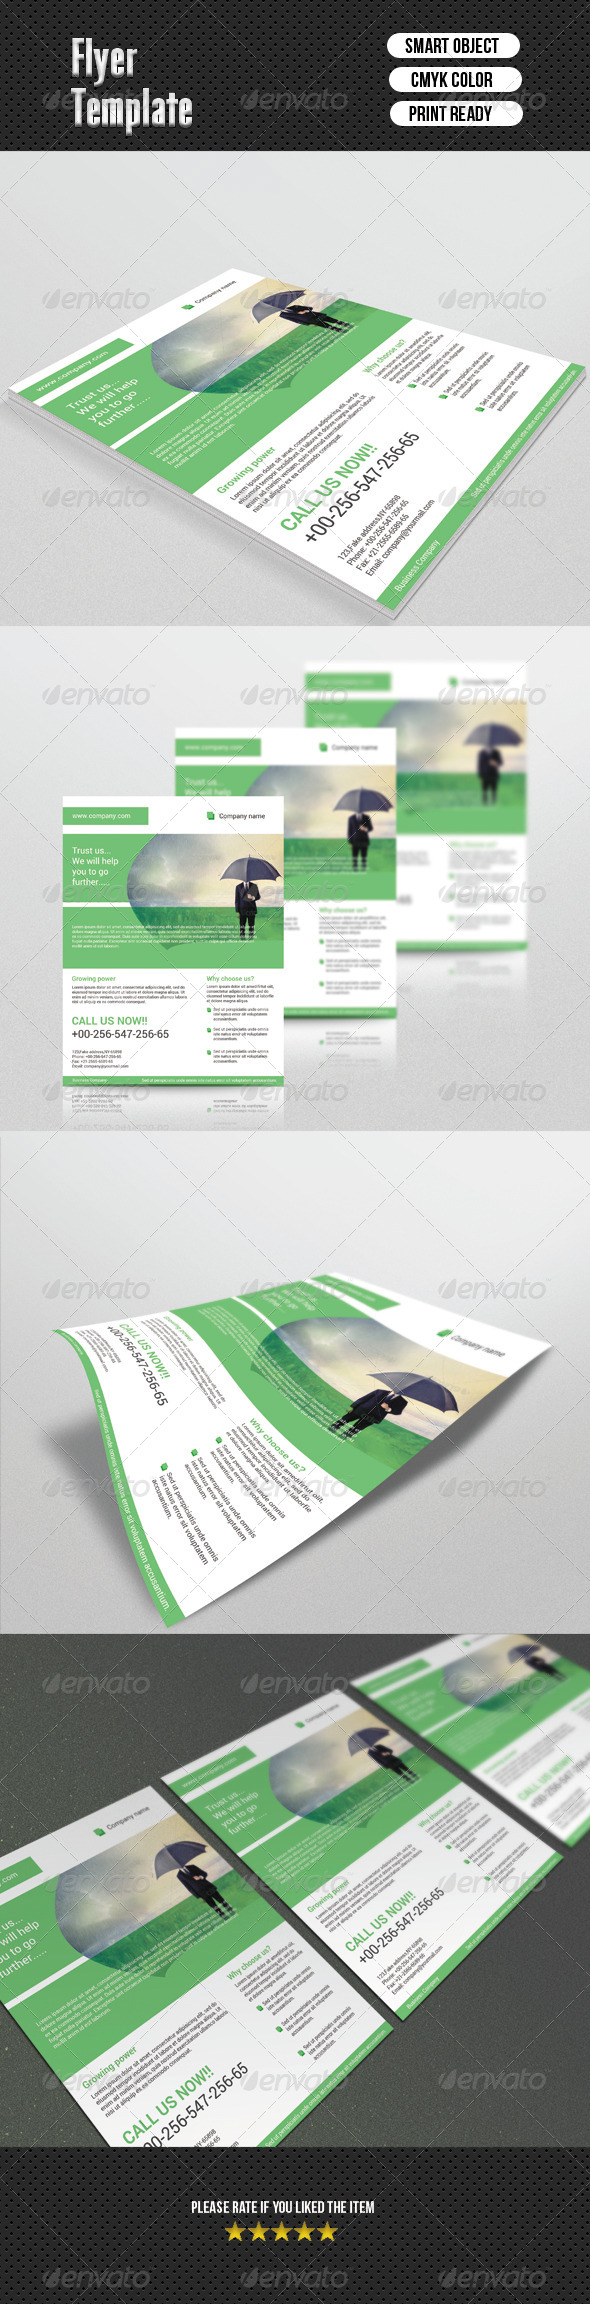 GraphicRiver Corporate Flyer Template 6721543